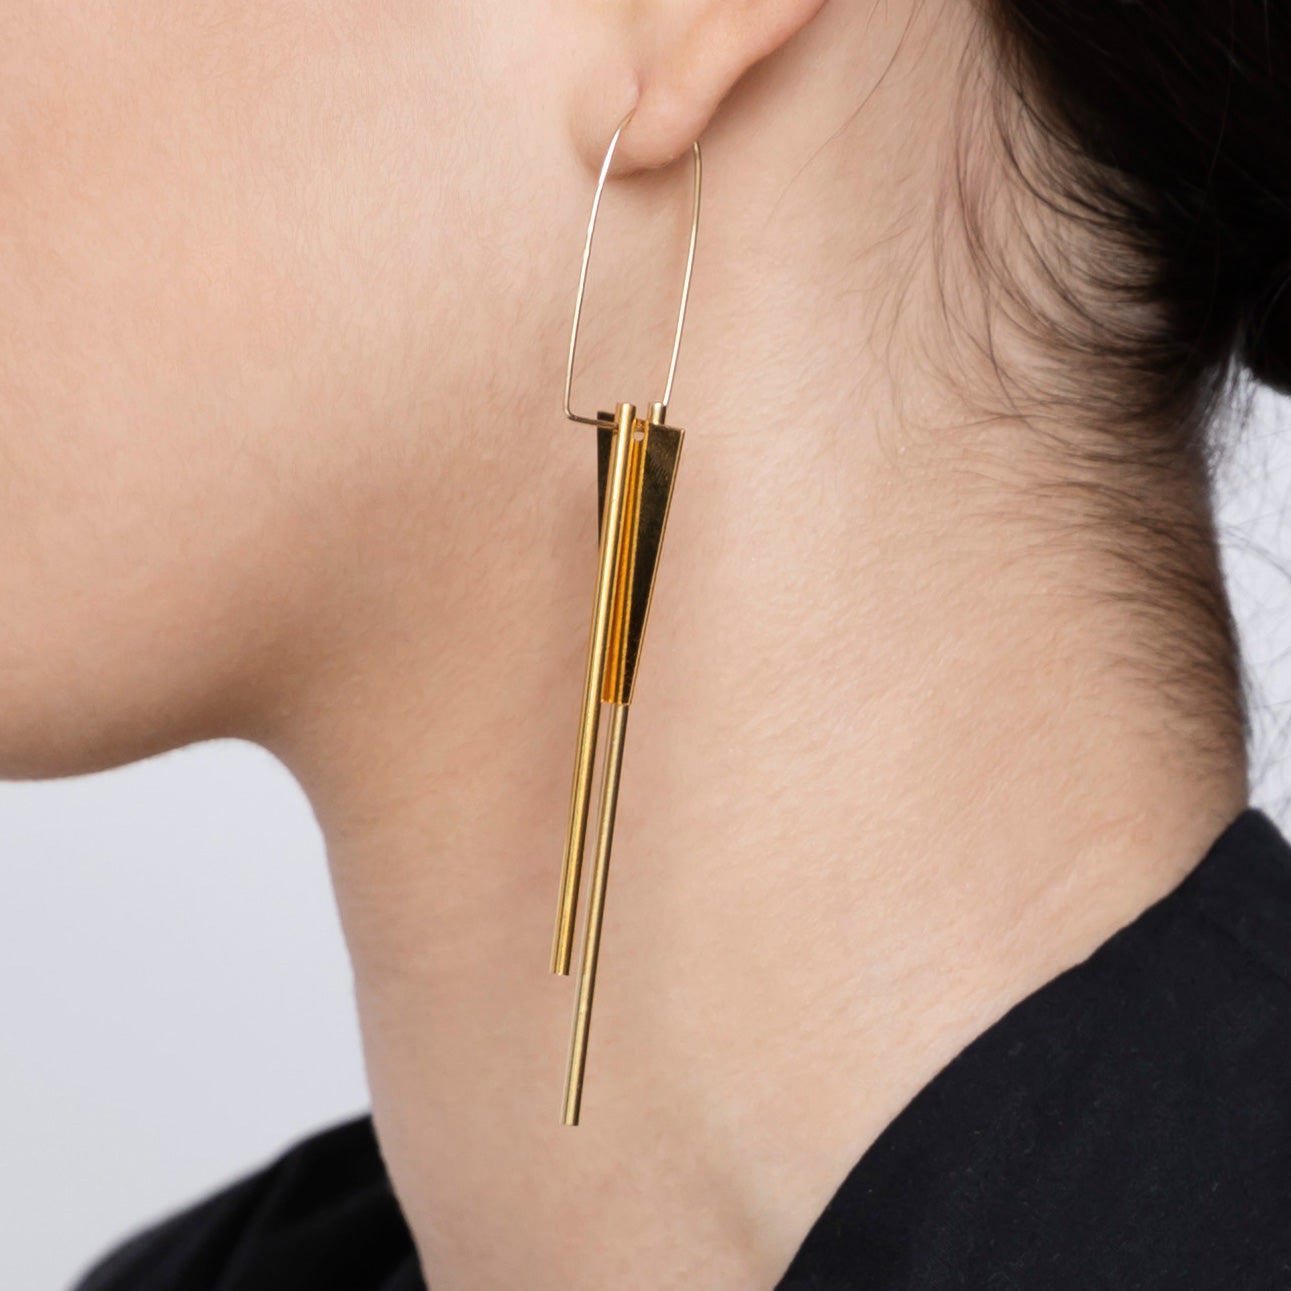 OUTLINE TRIPLE EARRINGS